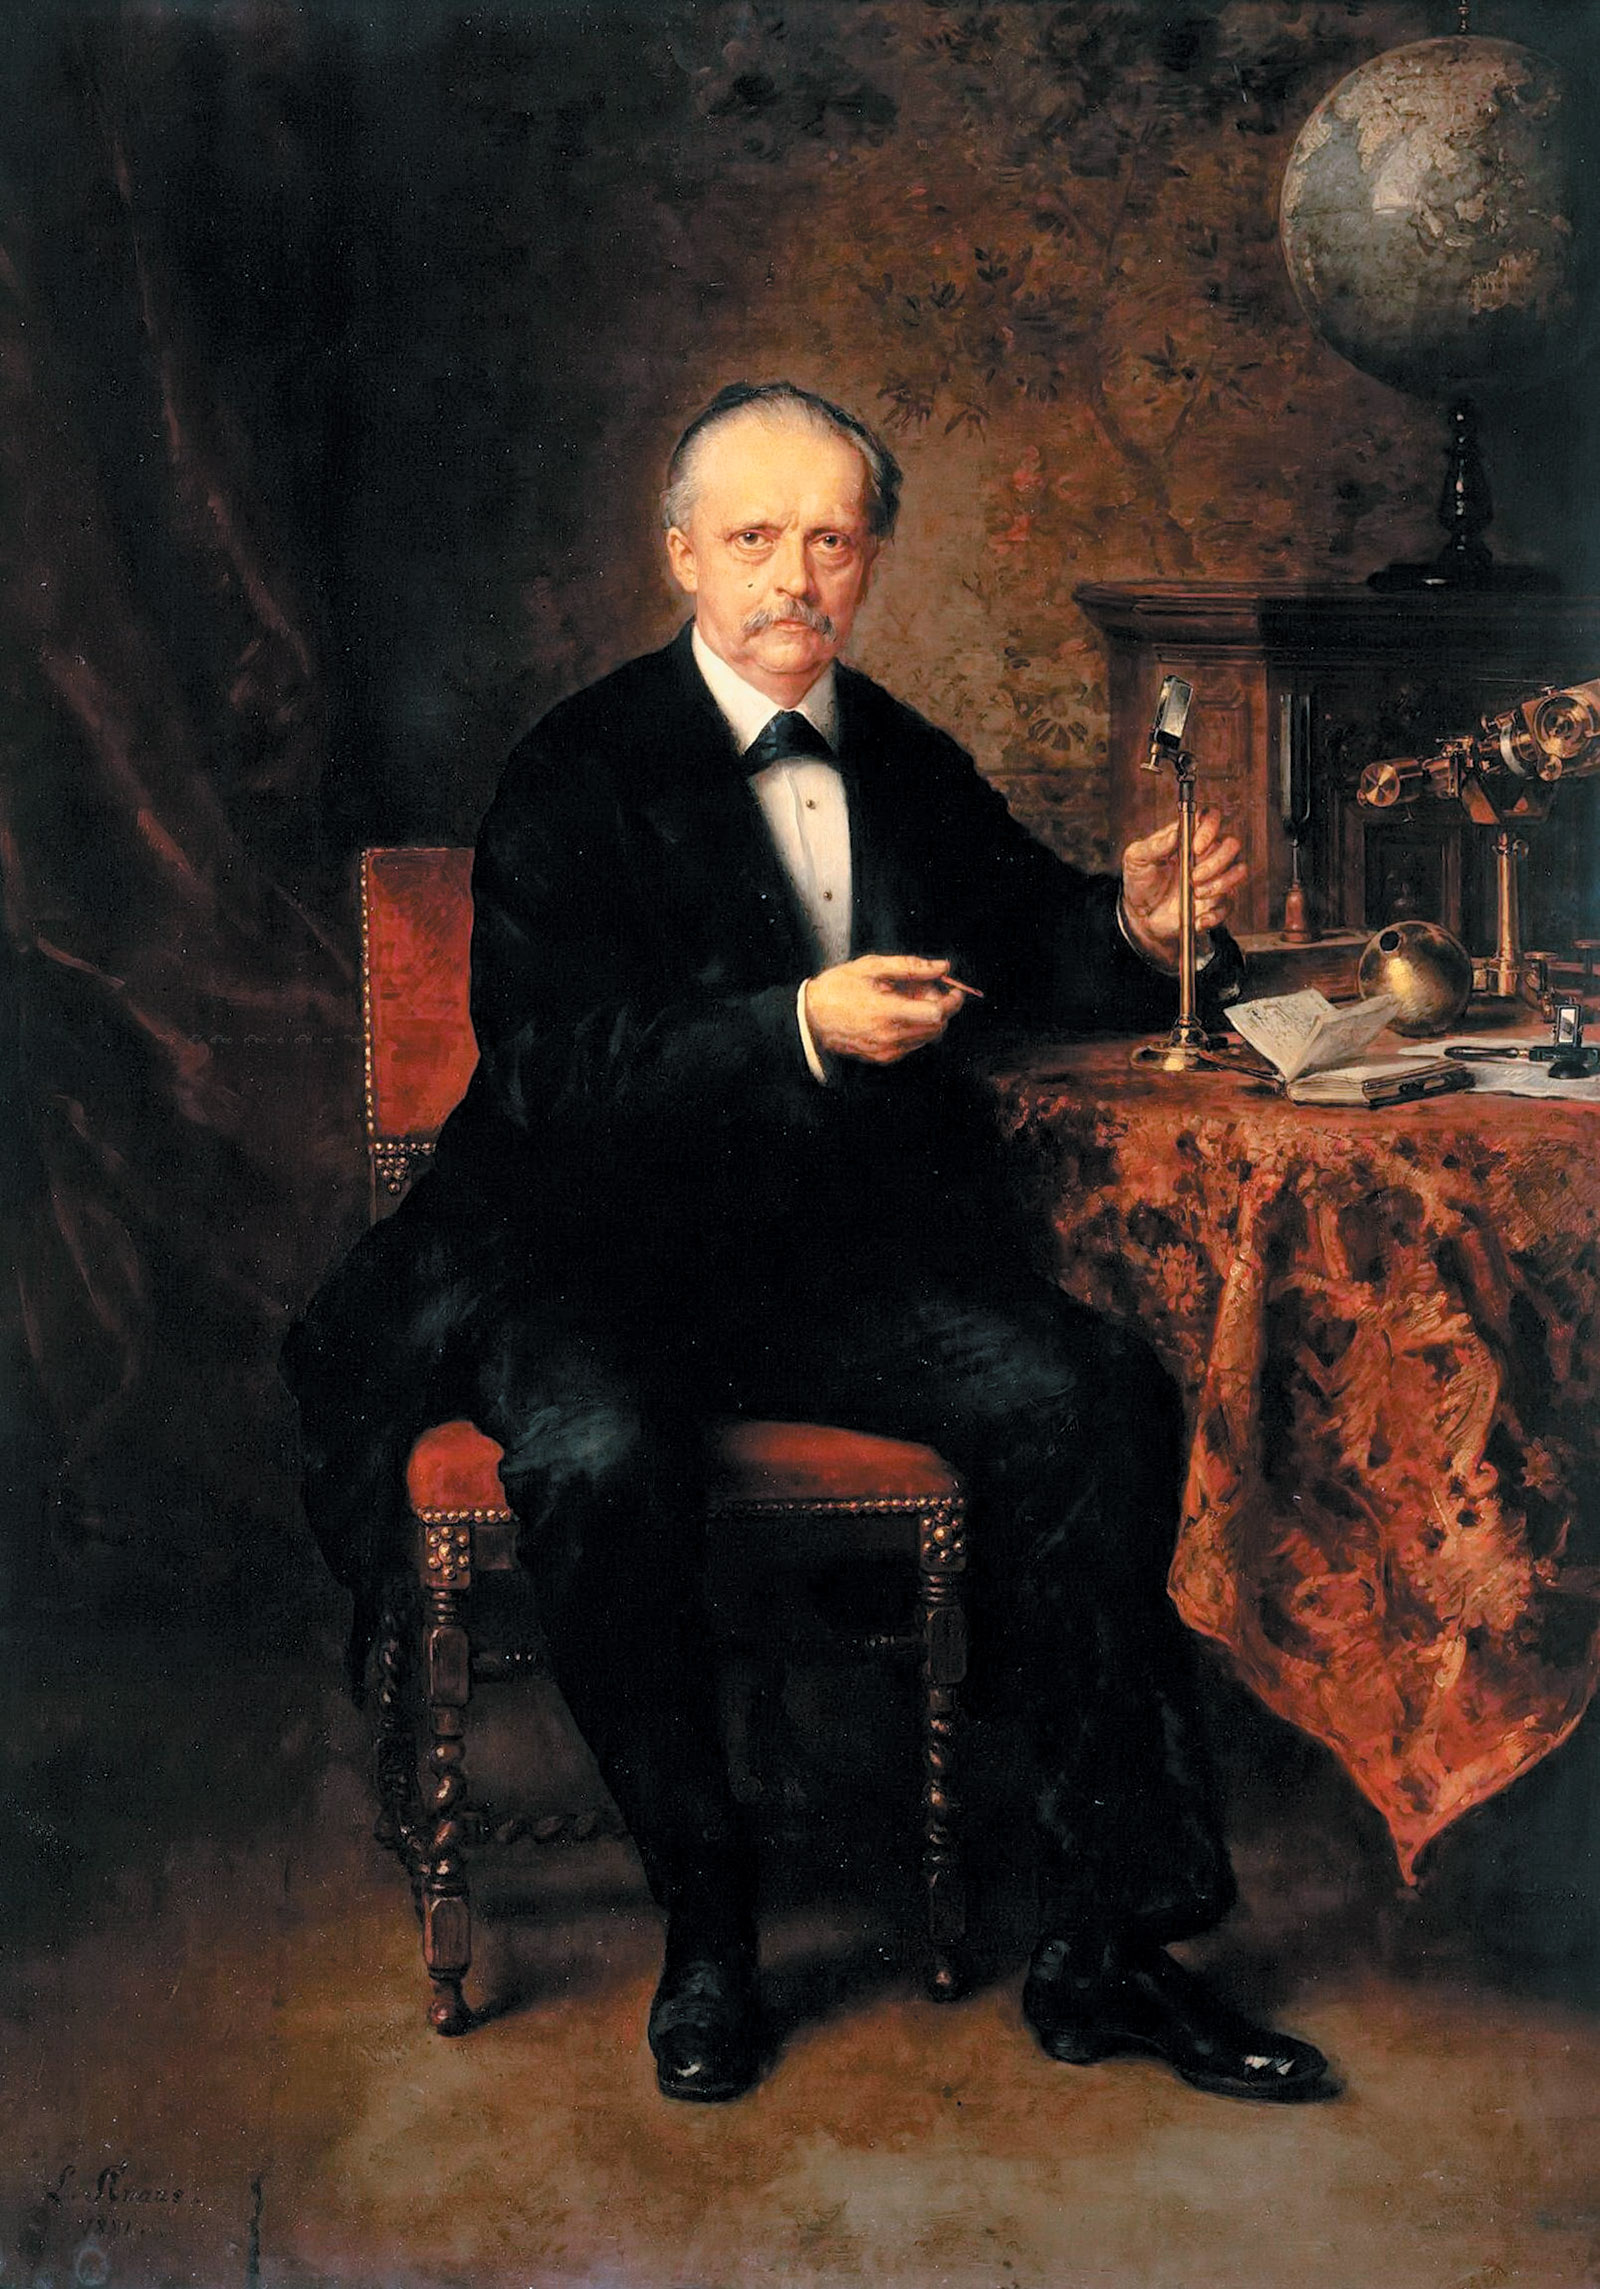 Hermann von Helmholtz with several of his inventions, painting by Ludwig Knaus, 1881